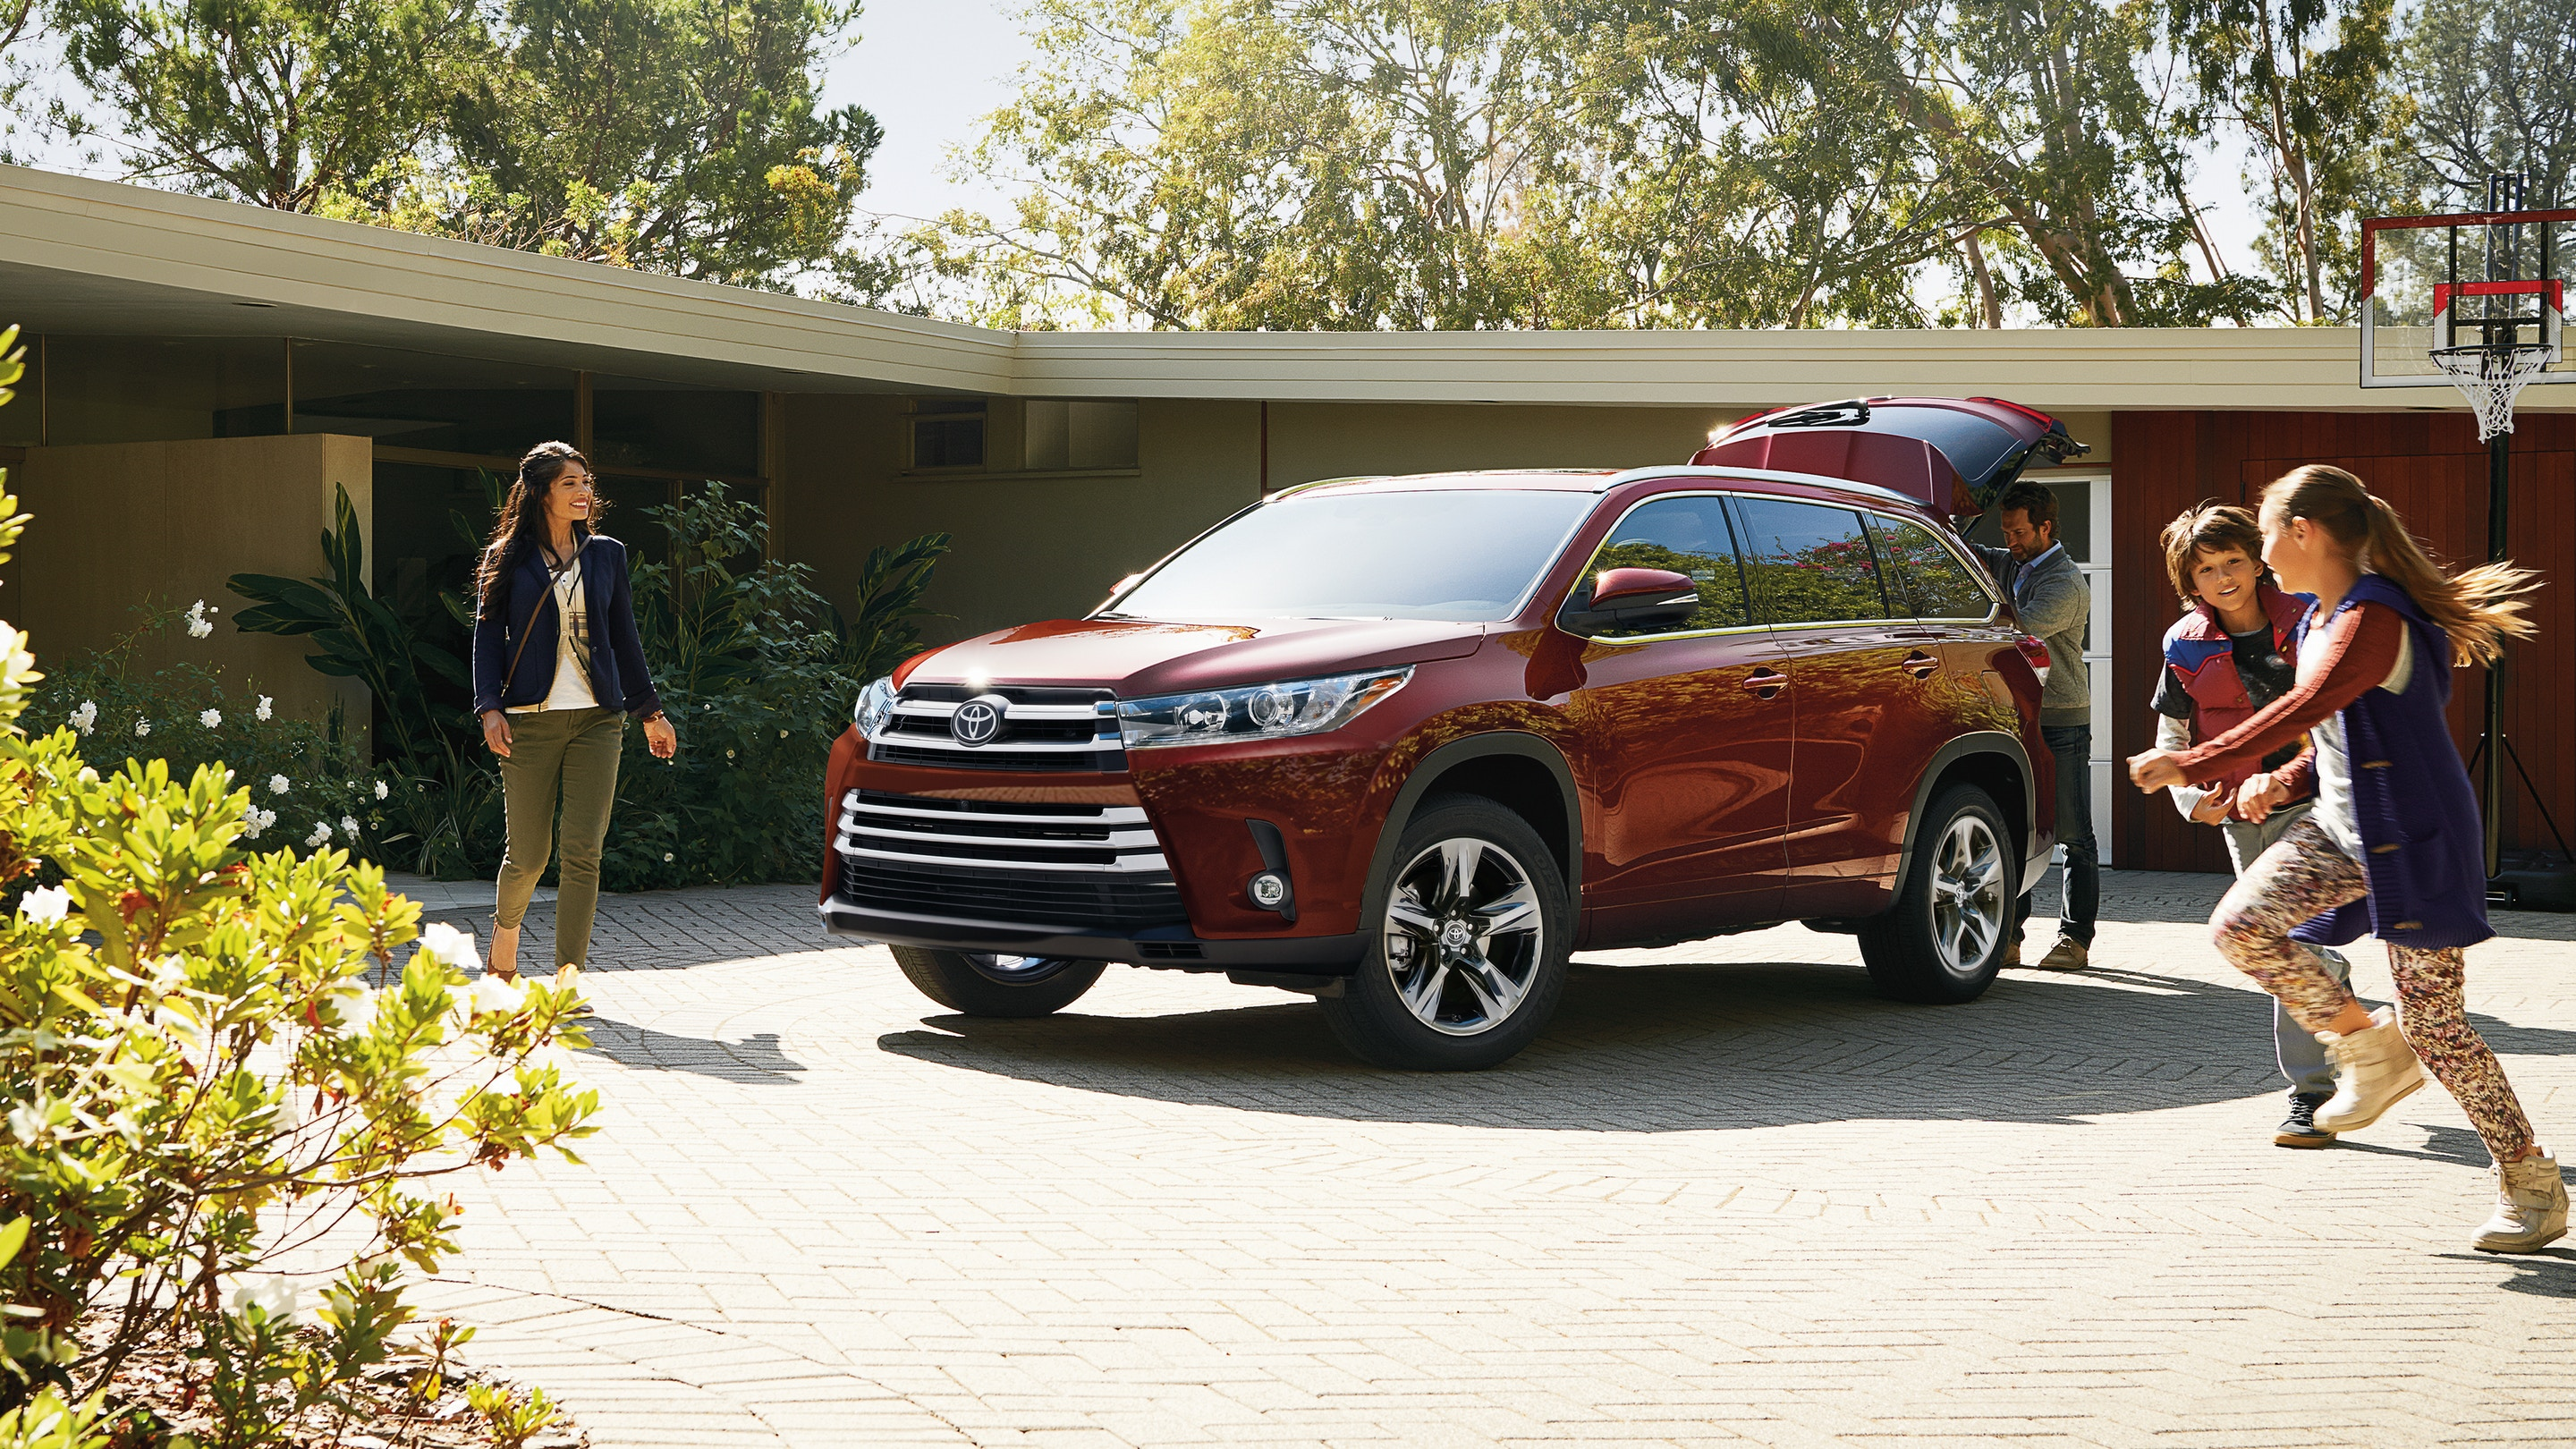 2019 Toyota Highlander for Sale near Brighton, MI